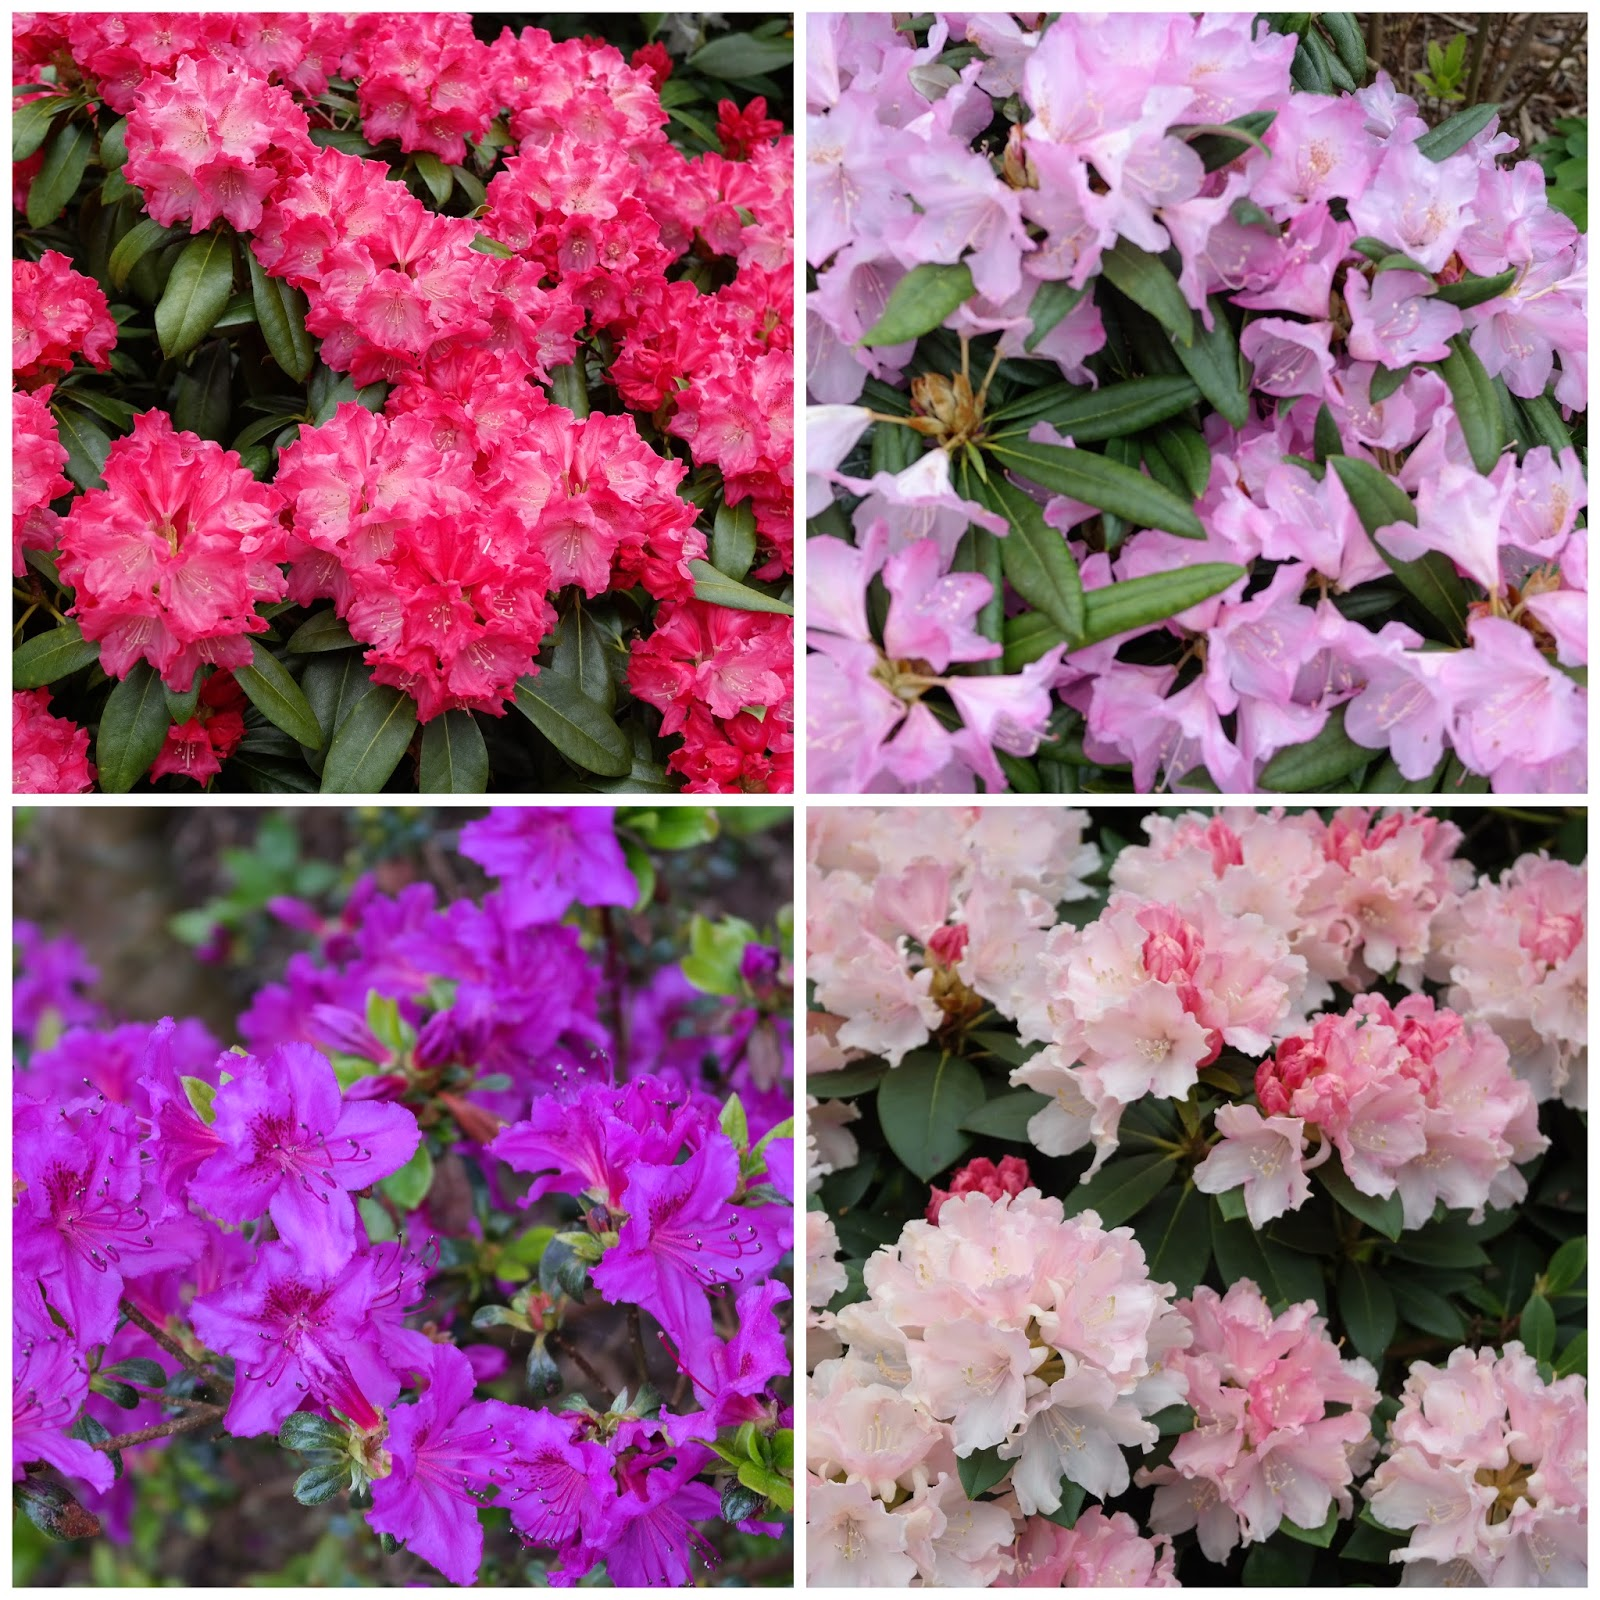 Rhododendronhaven i Rens